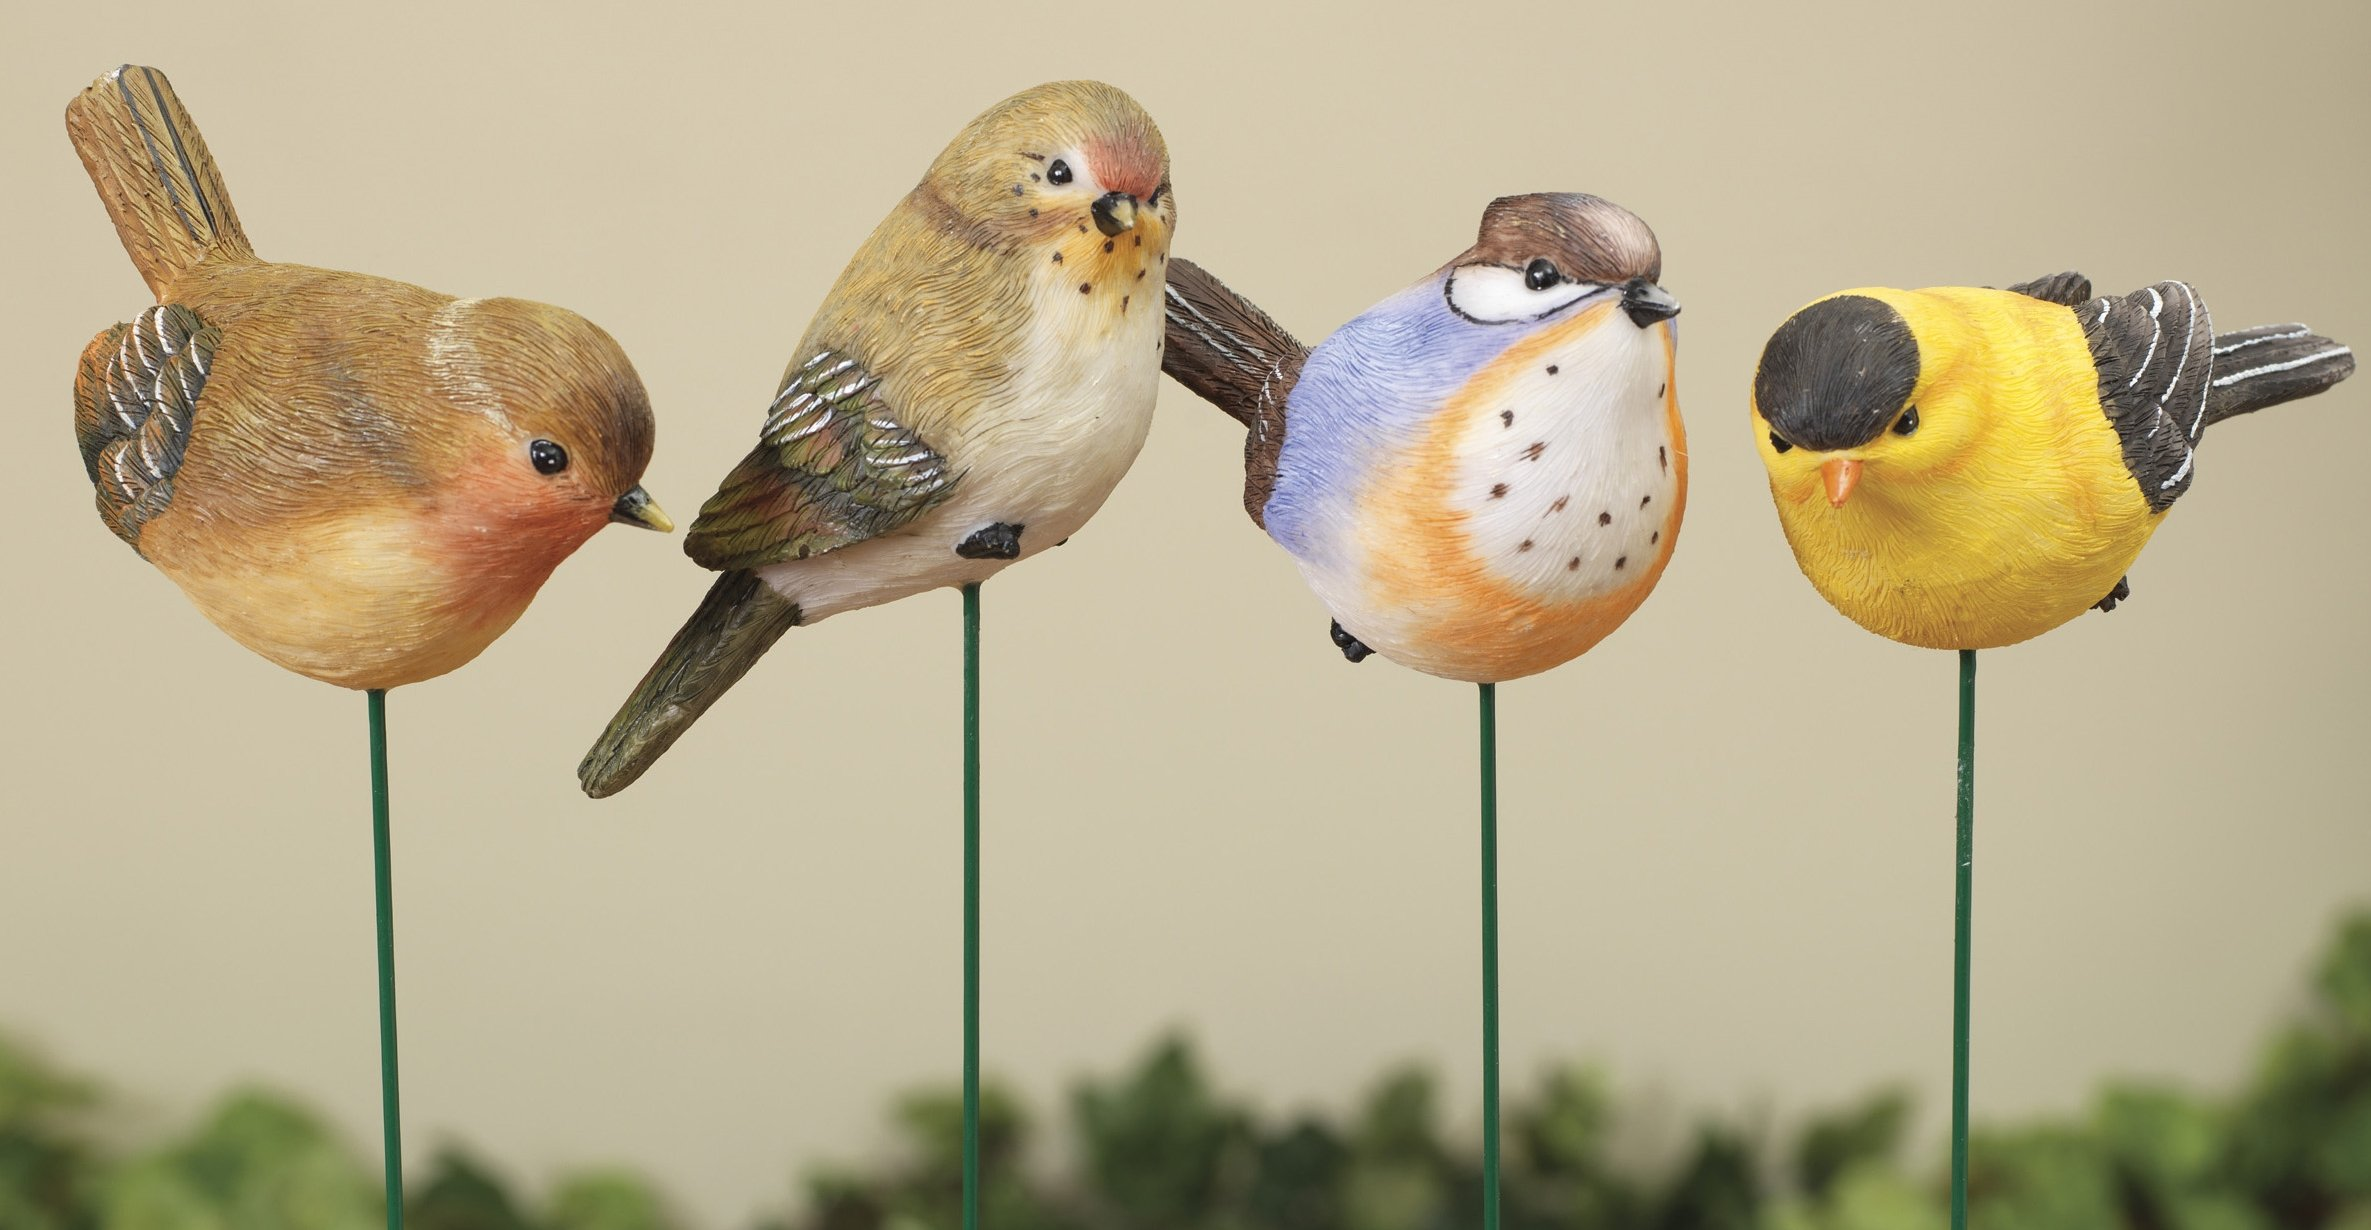 Set of 4 Pretty Resin Birds Outdoor Garden Decoration Plant Stakes 13.4''